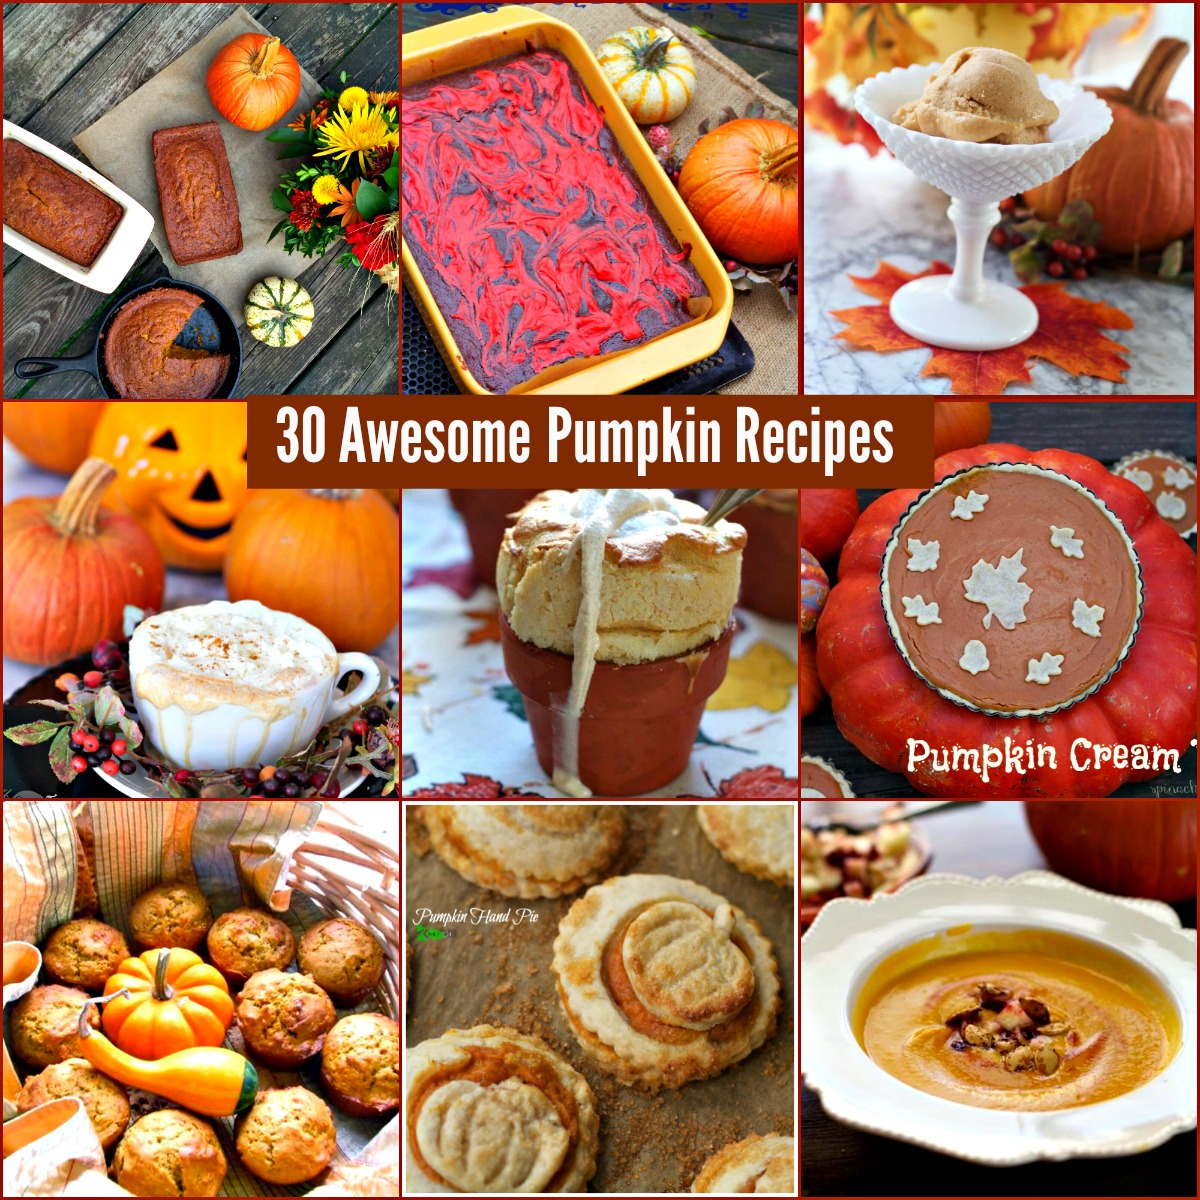 Best Pumpkin Dessert Recipes with Canned Pumpkin from Spinach Tiger. #pumpkin #desserts